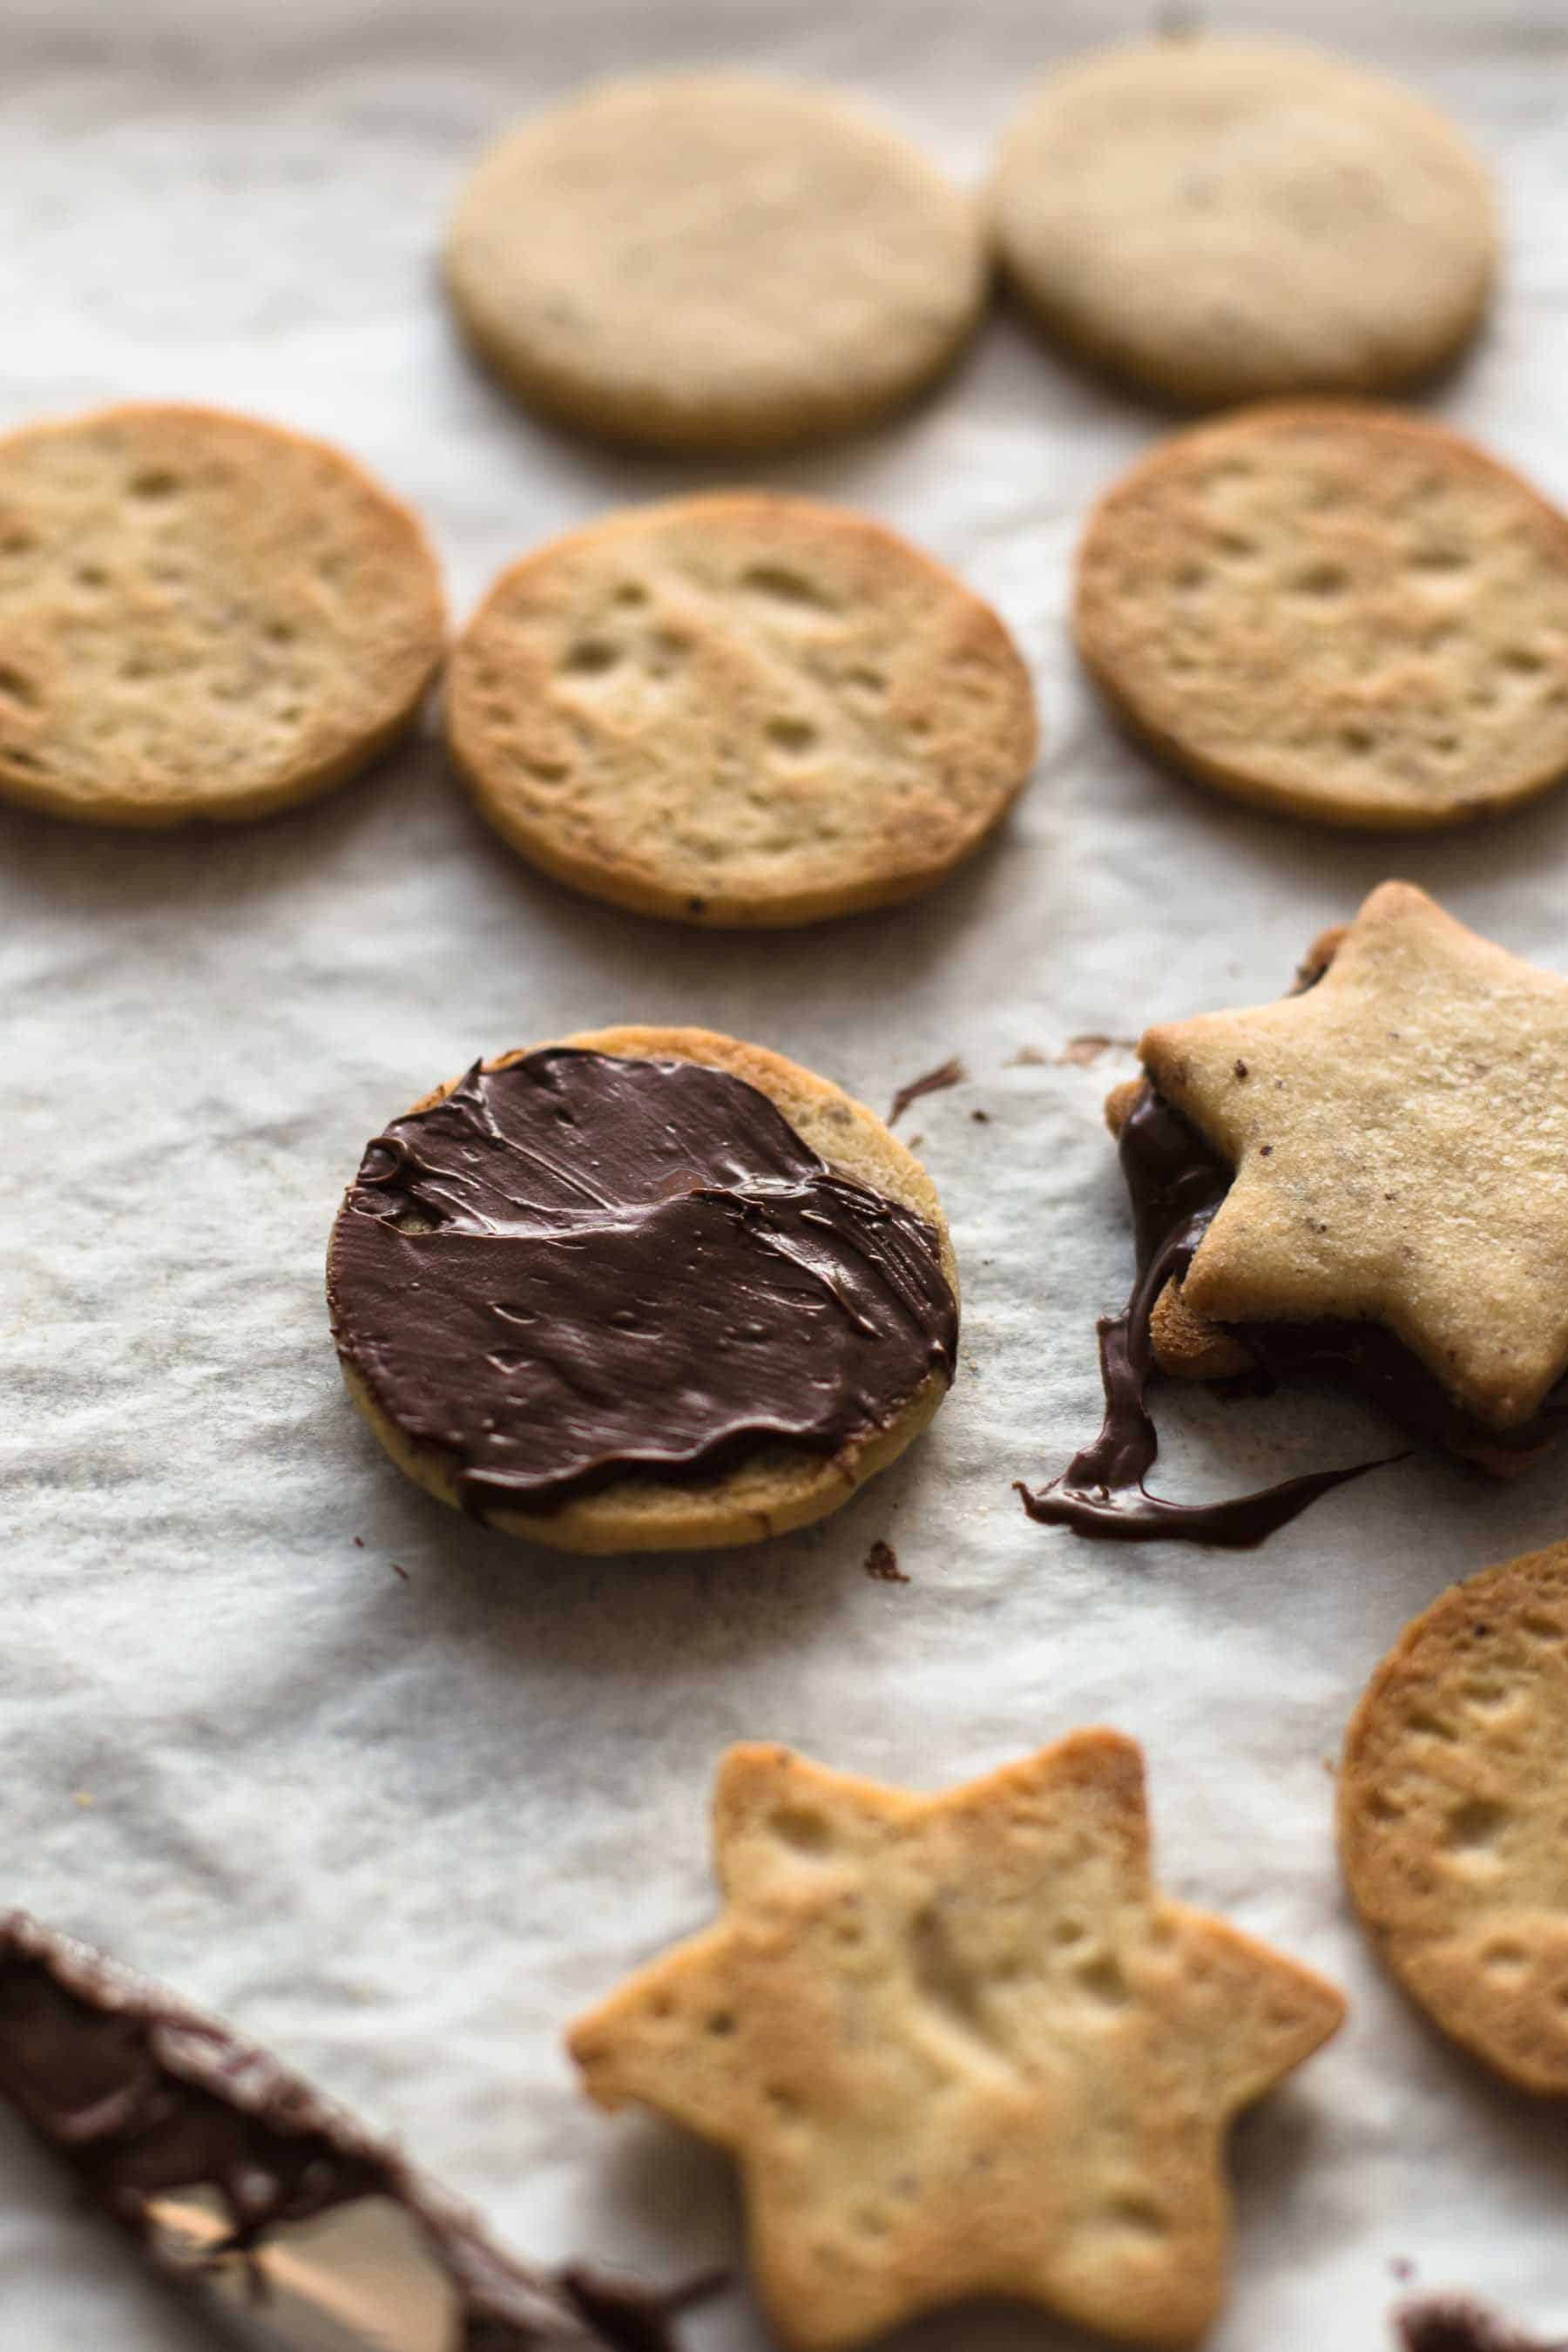 Baked hazelnut cookies with chocolate spread